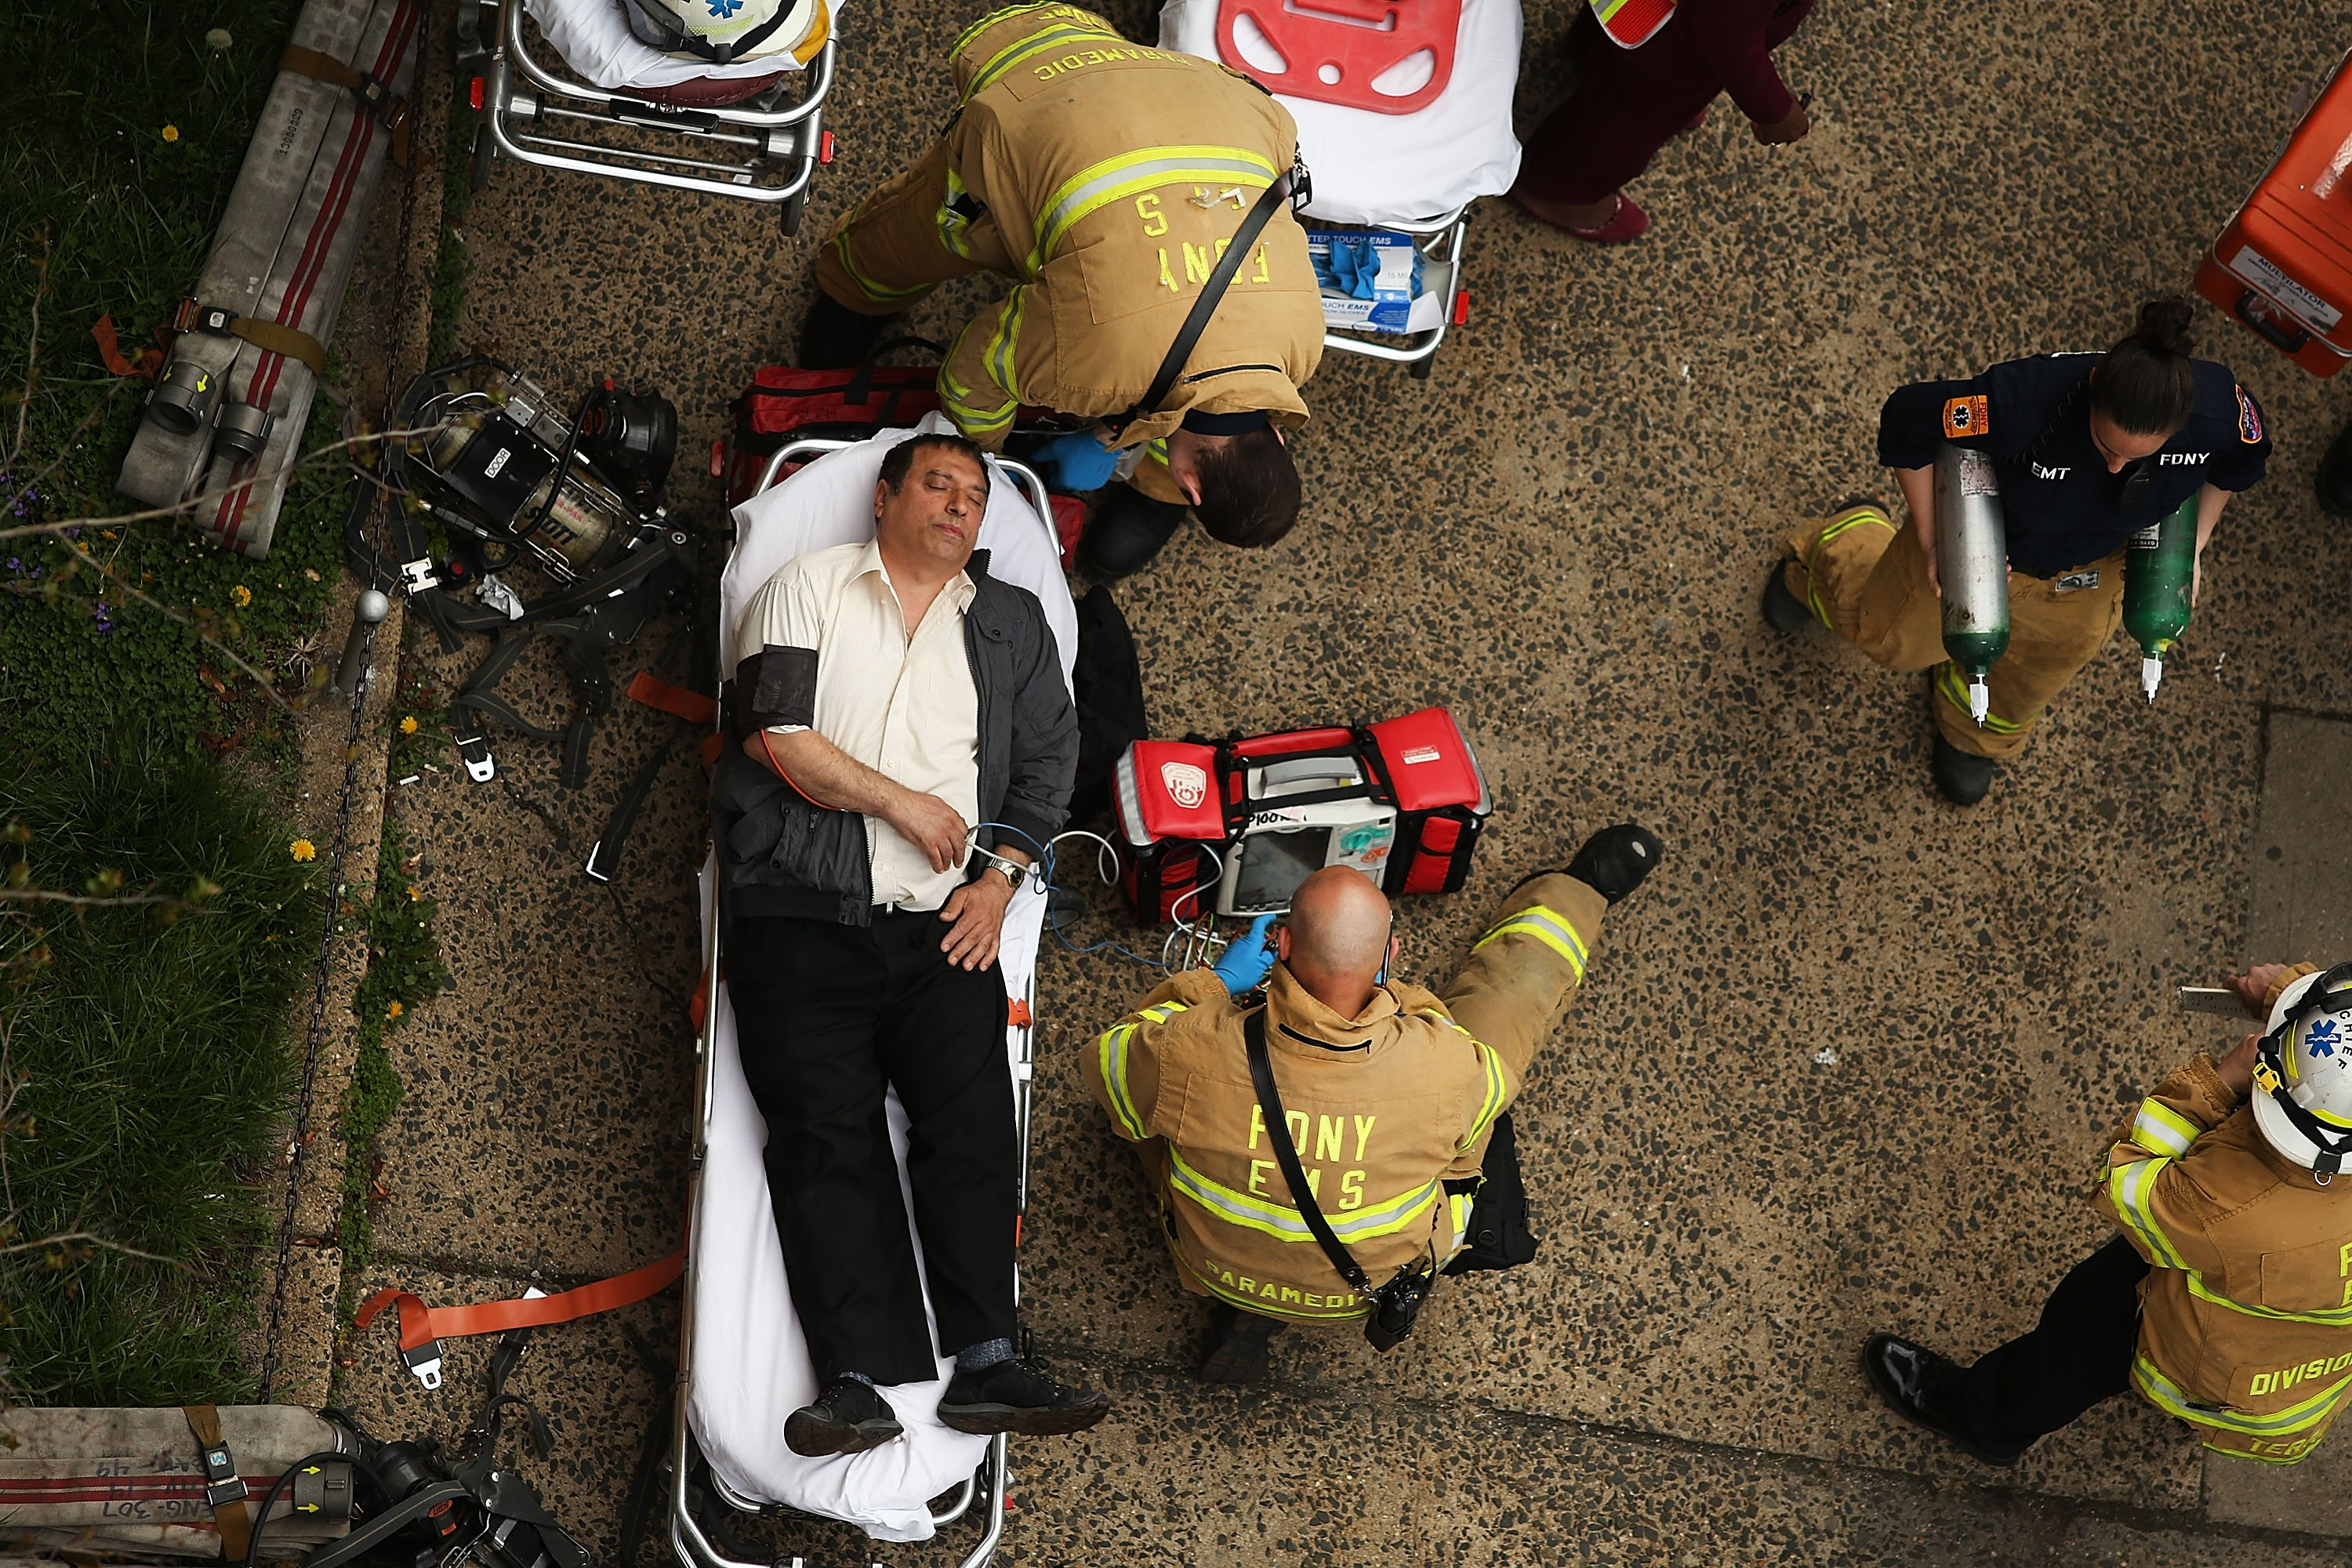 An injured man is aided by New York City firefighters after being evacuated from an emergency staircase following an F train derailment in the Woodside neighborhood of the Queens, N.Y., May 2, 2014.